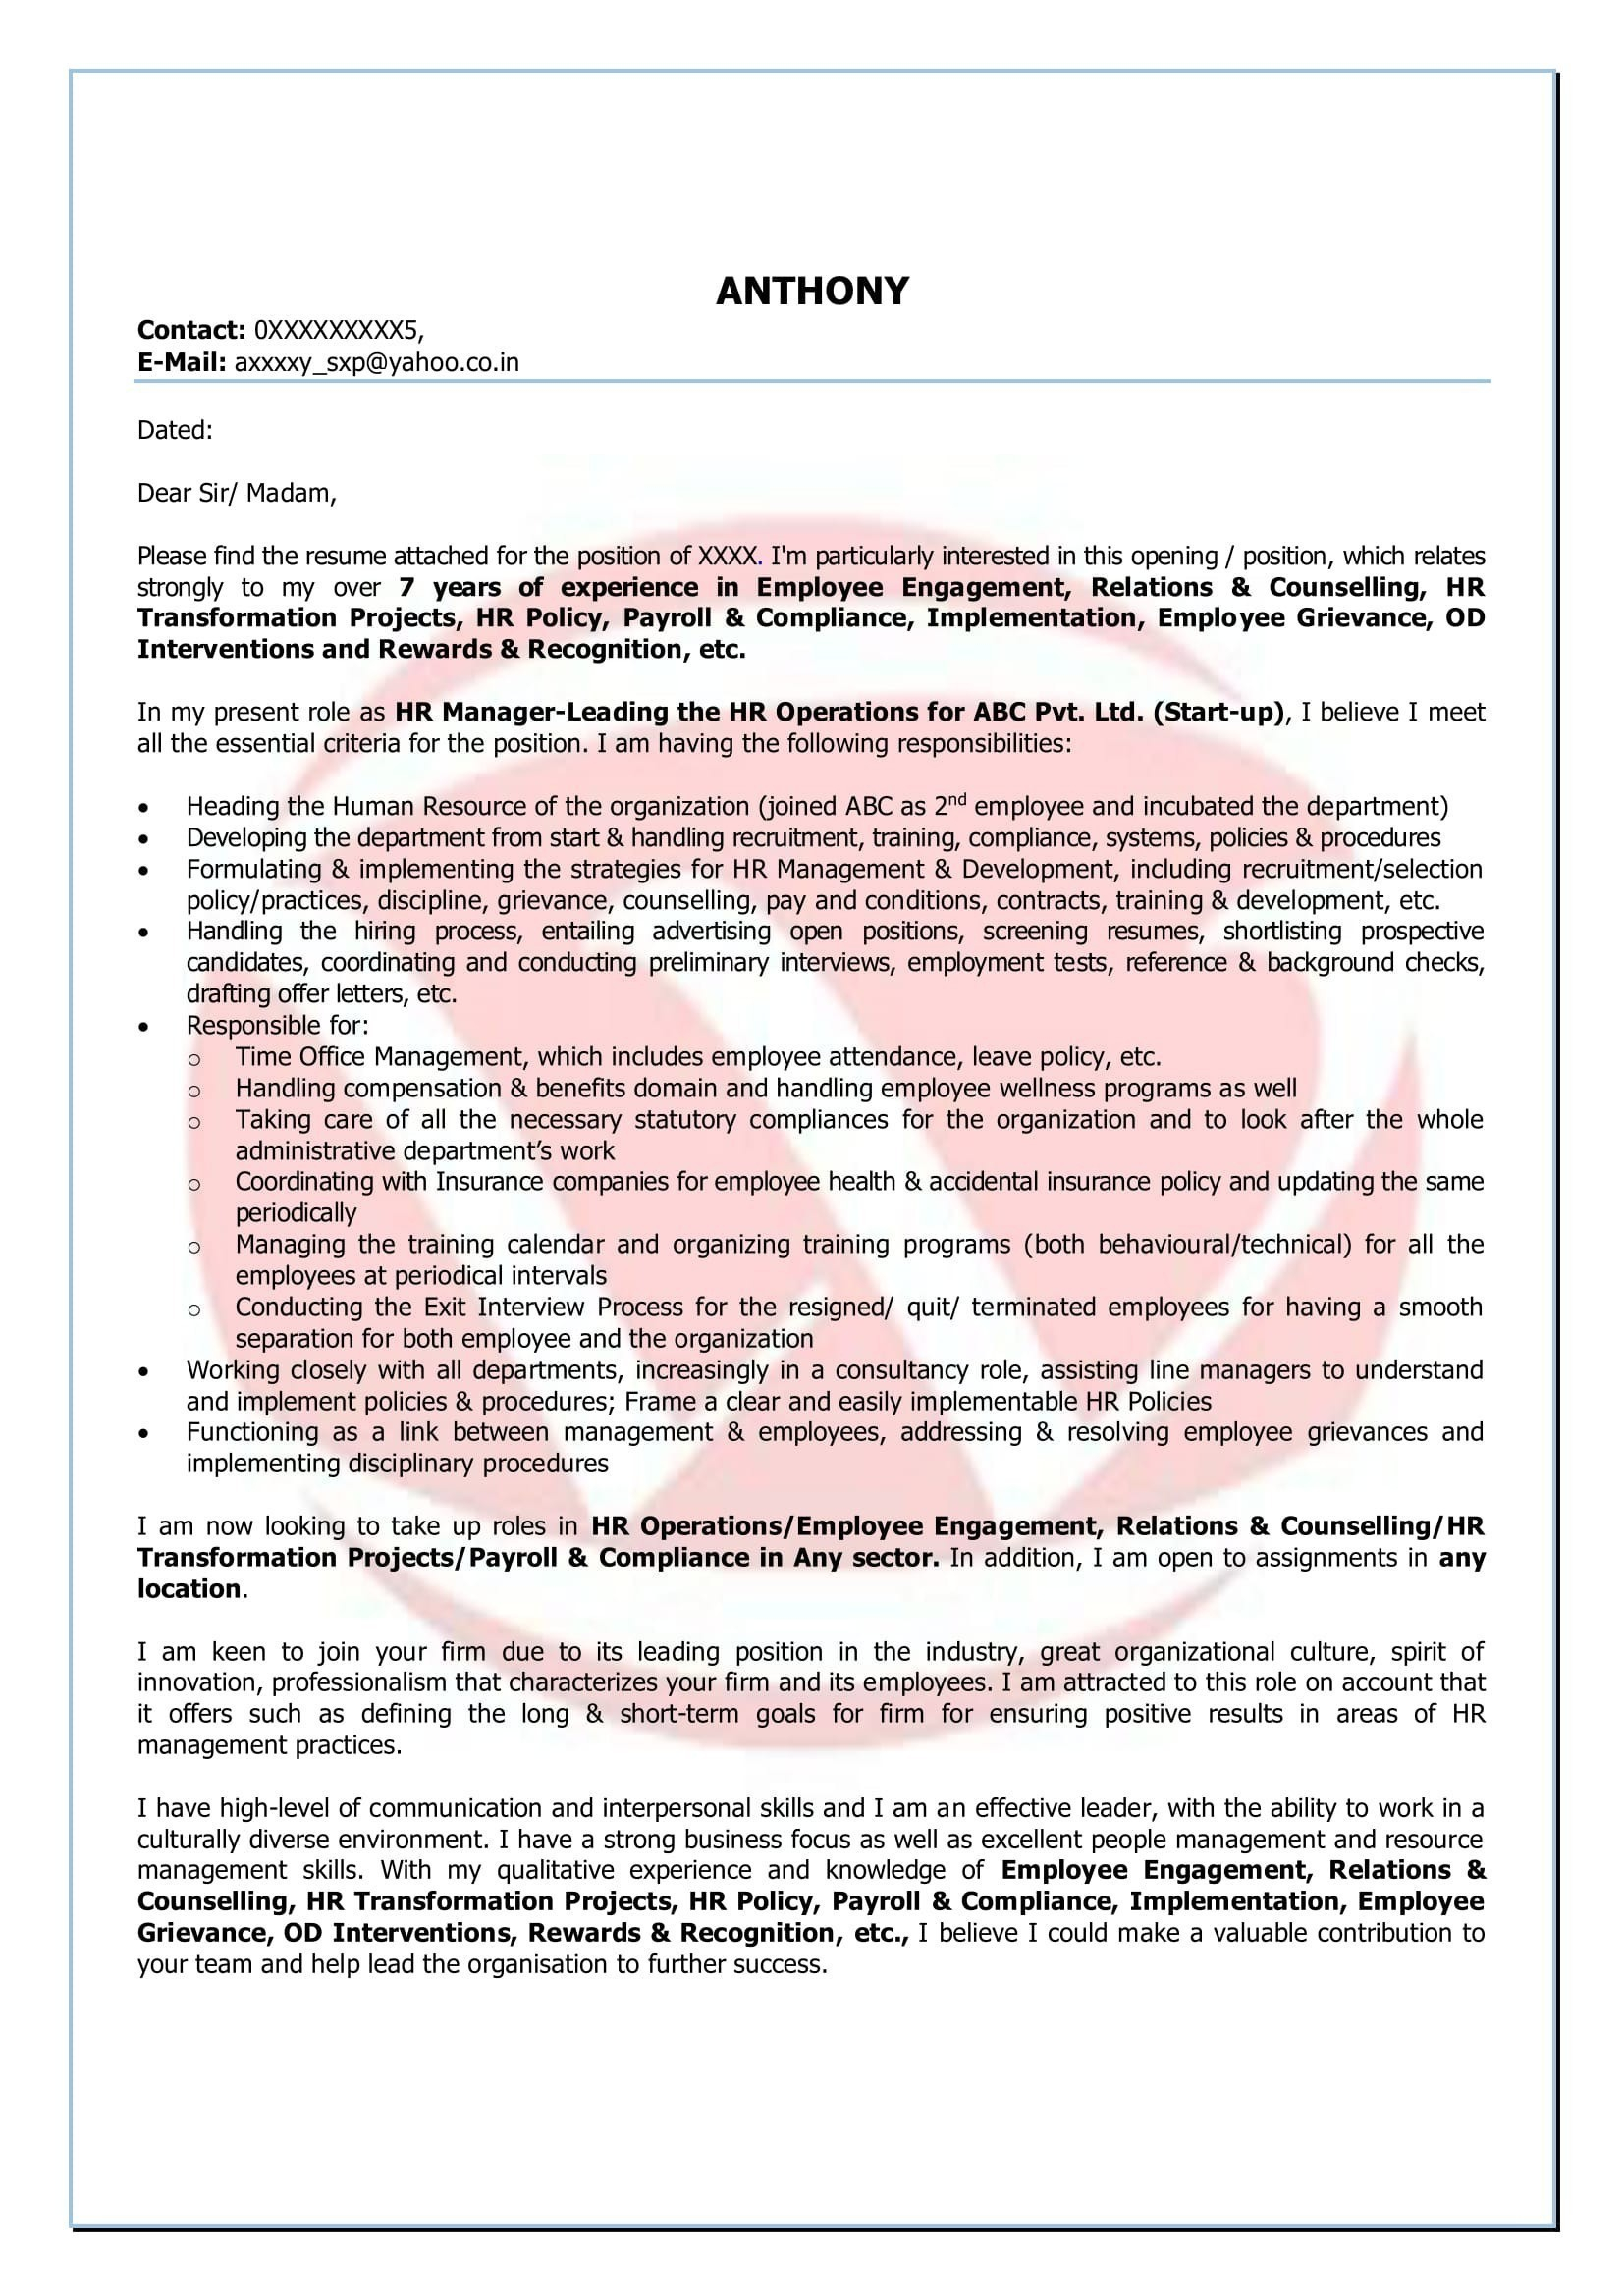 Letter Of Resignation Template Word 2007 - Resume Templates for Word Word Resume Template Up Label Template